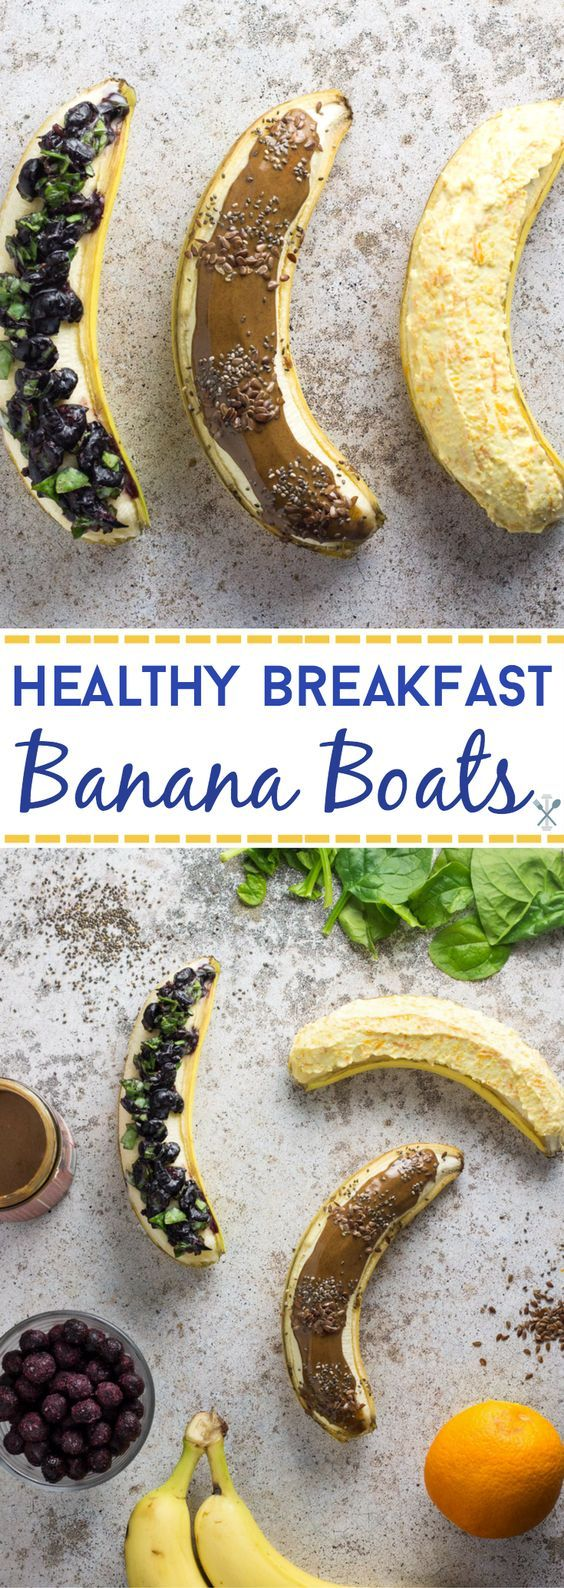 A new spin on quick and healthy breakfast - these healthy breakfast banana boats are packed with nutrients and the easiest way to breakfast on the go. Paleo and vegan